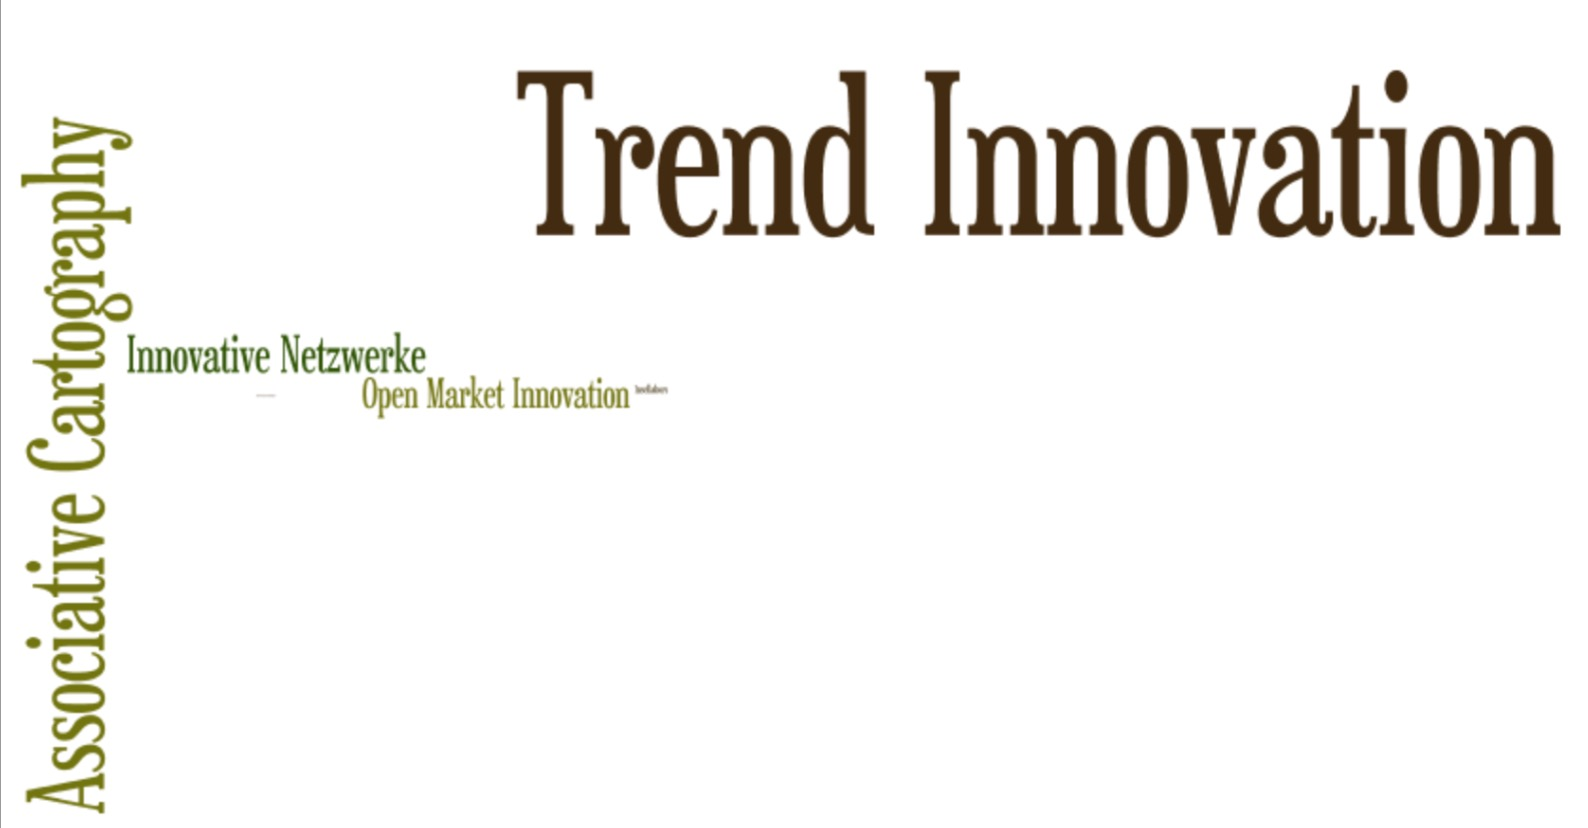 Tag Cloud 5 - Trend Innovation